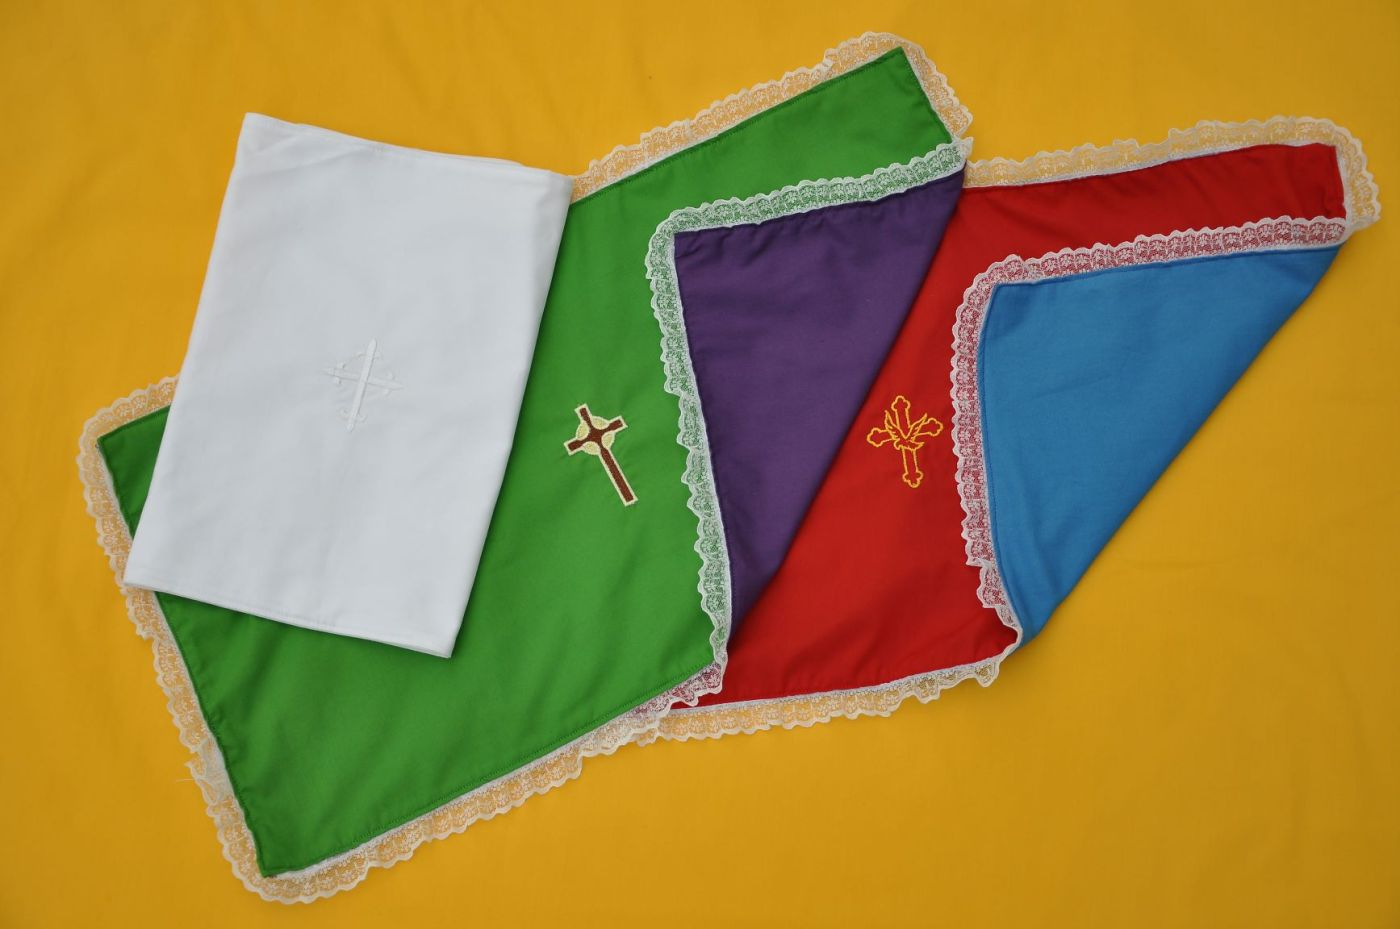 Reversible prayer table cloths in liturgical colors